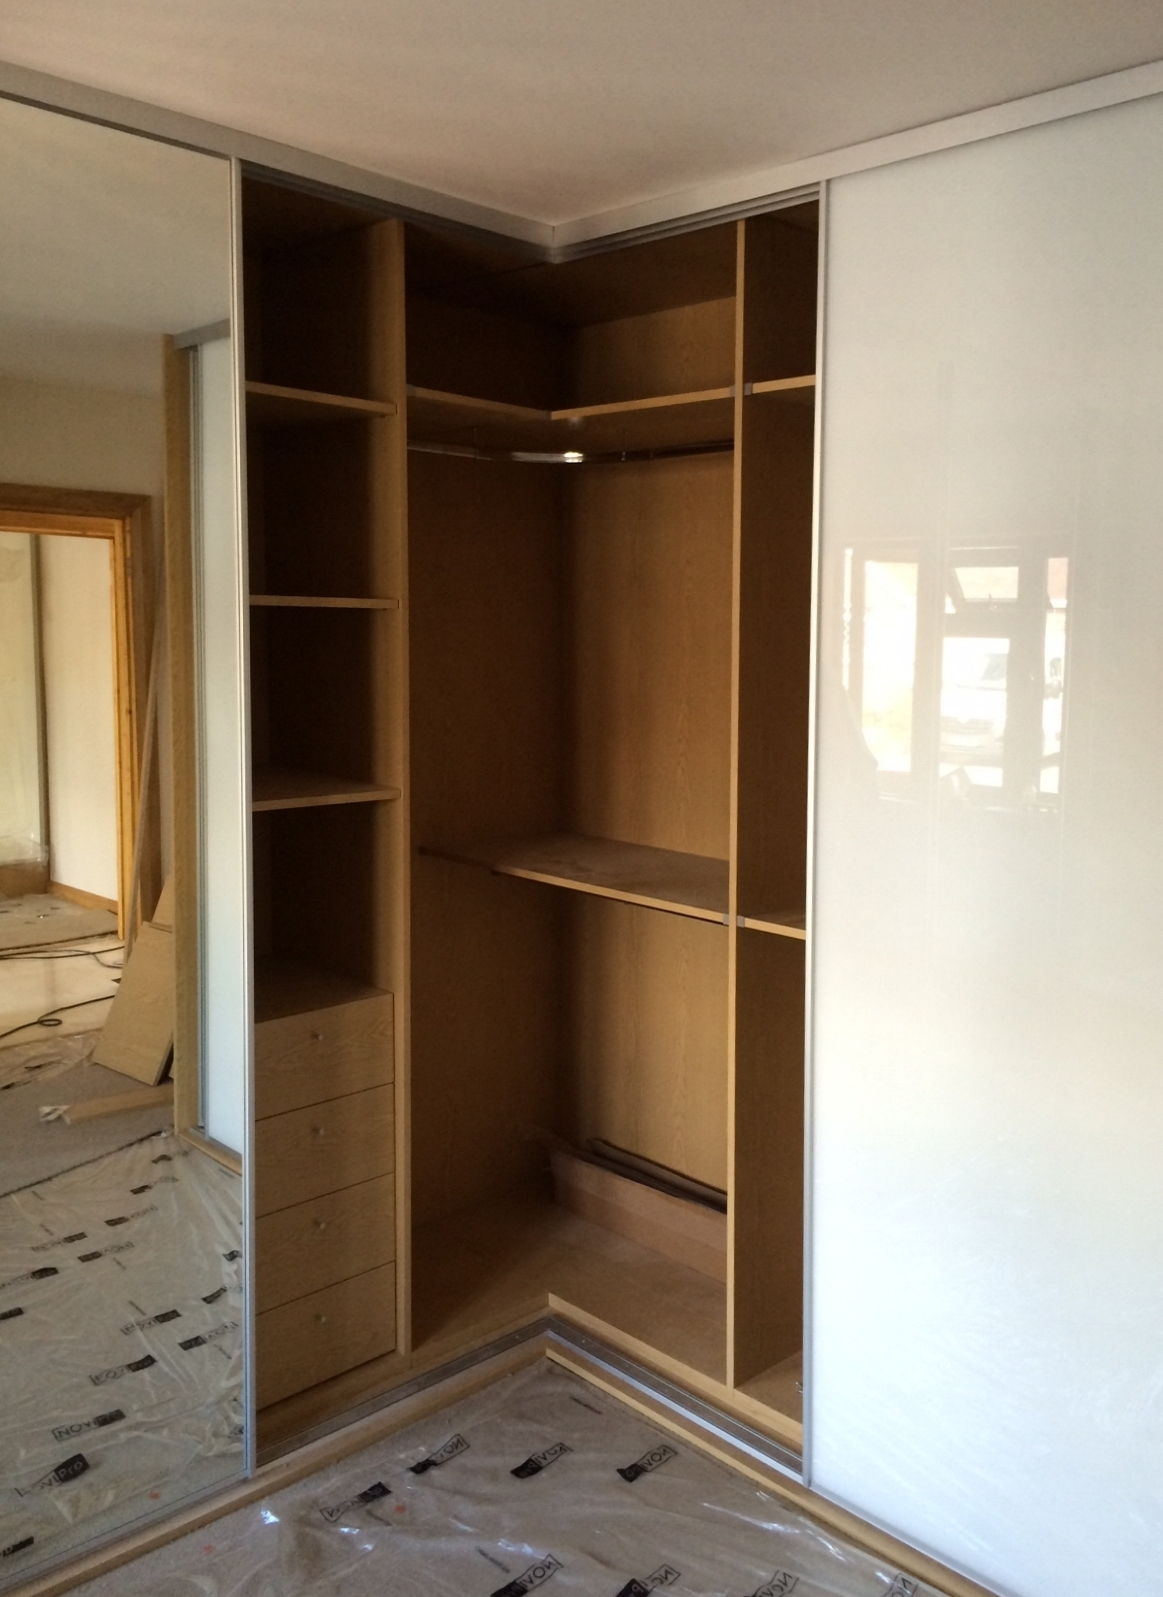 Curved Wardrobe Doors For Newest Corner & L Shaped Sliding Wardrobes (View 3 of 15)